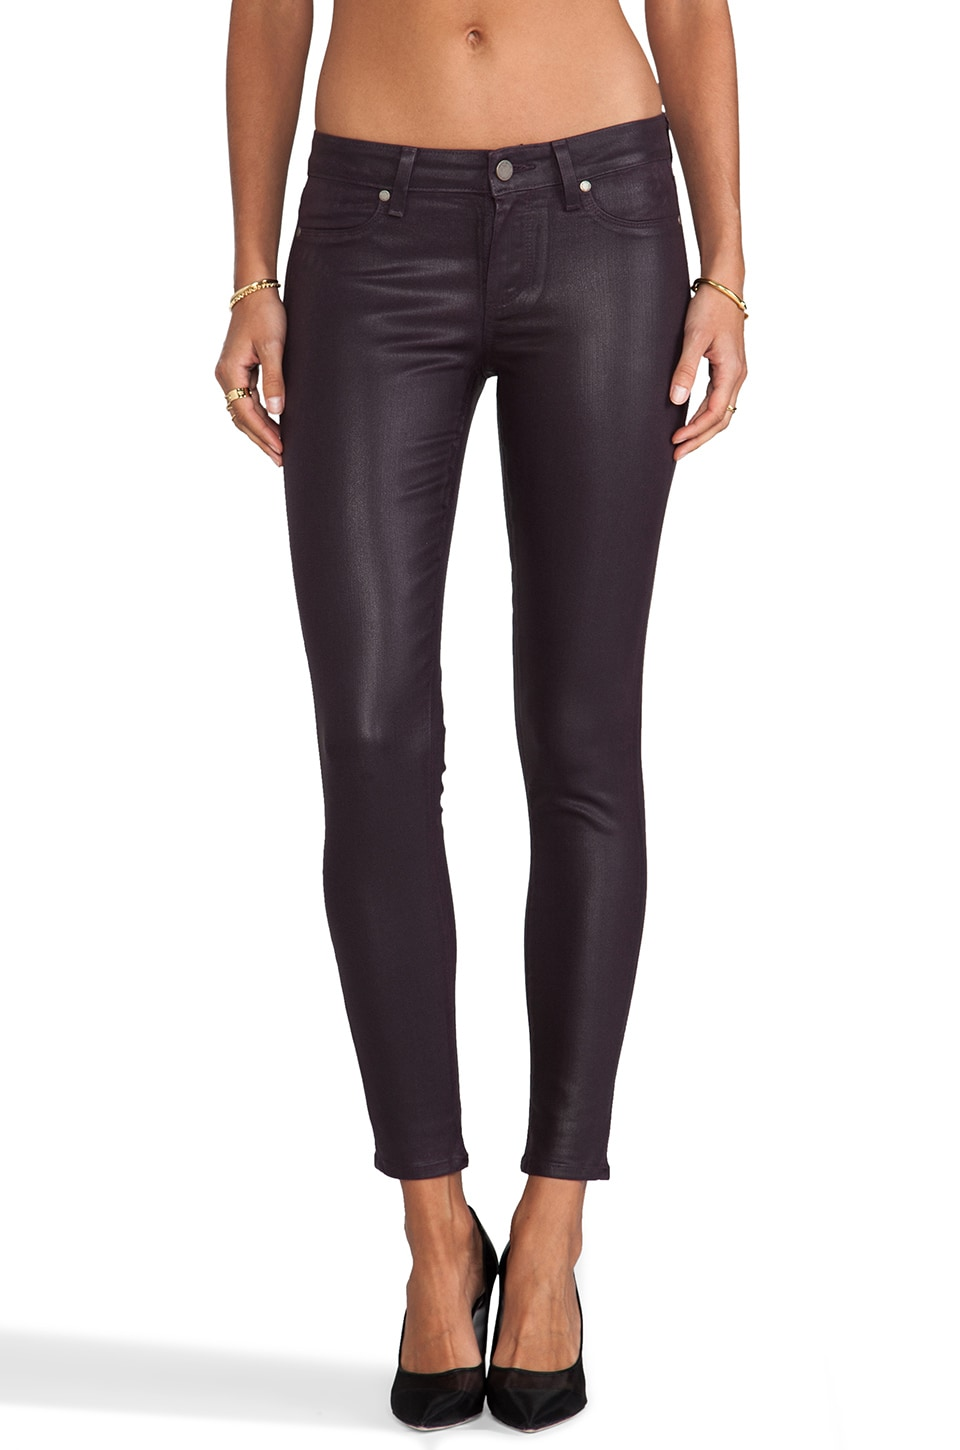 PAIGE Denim Verdugo Skinny Ankle in Black Cherry